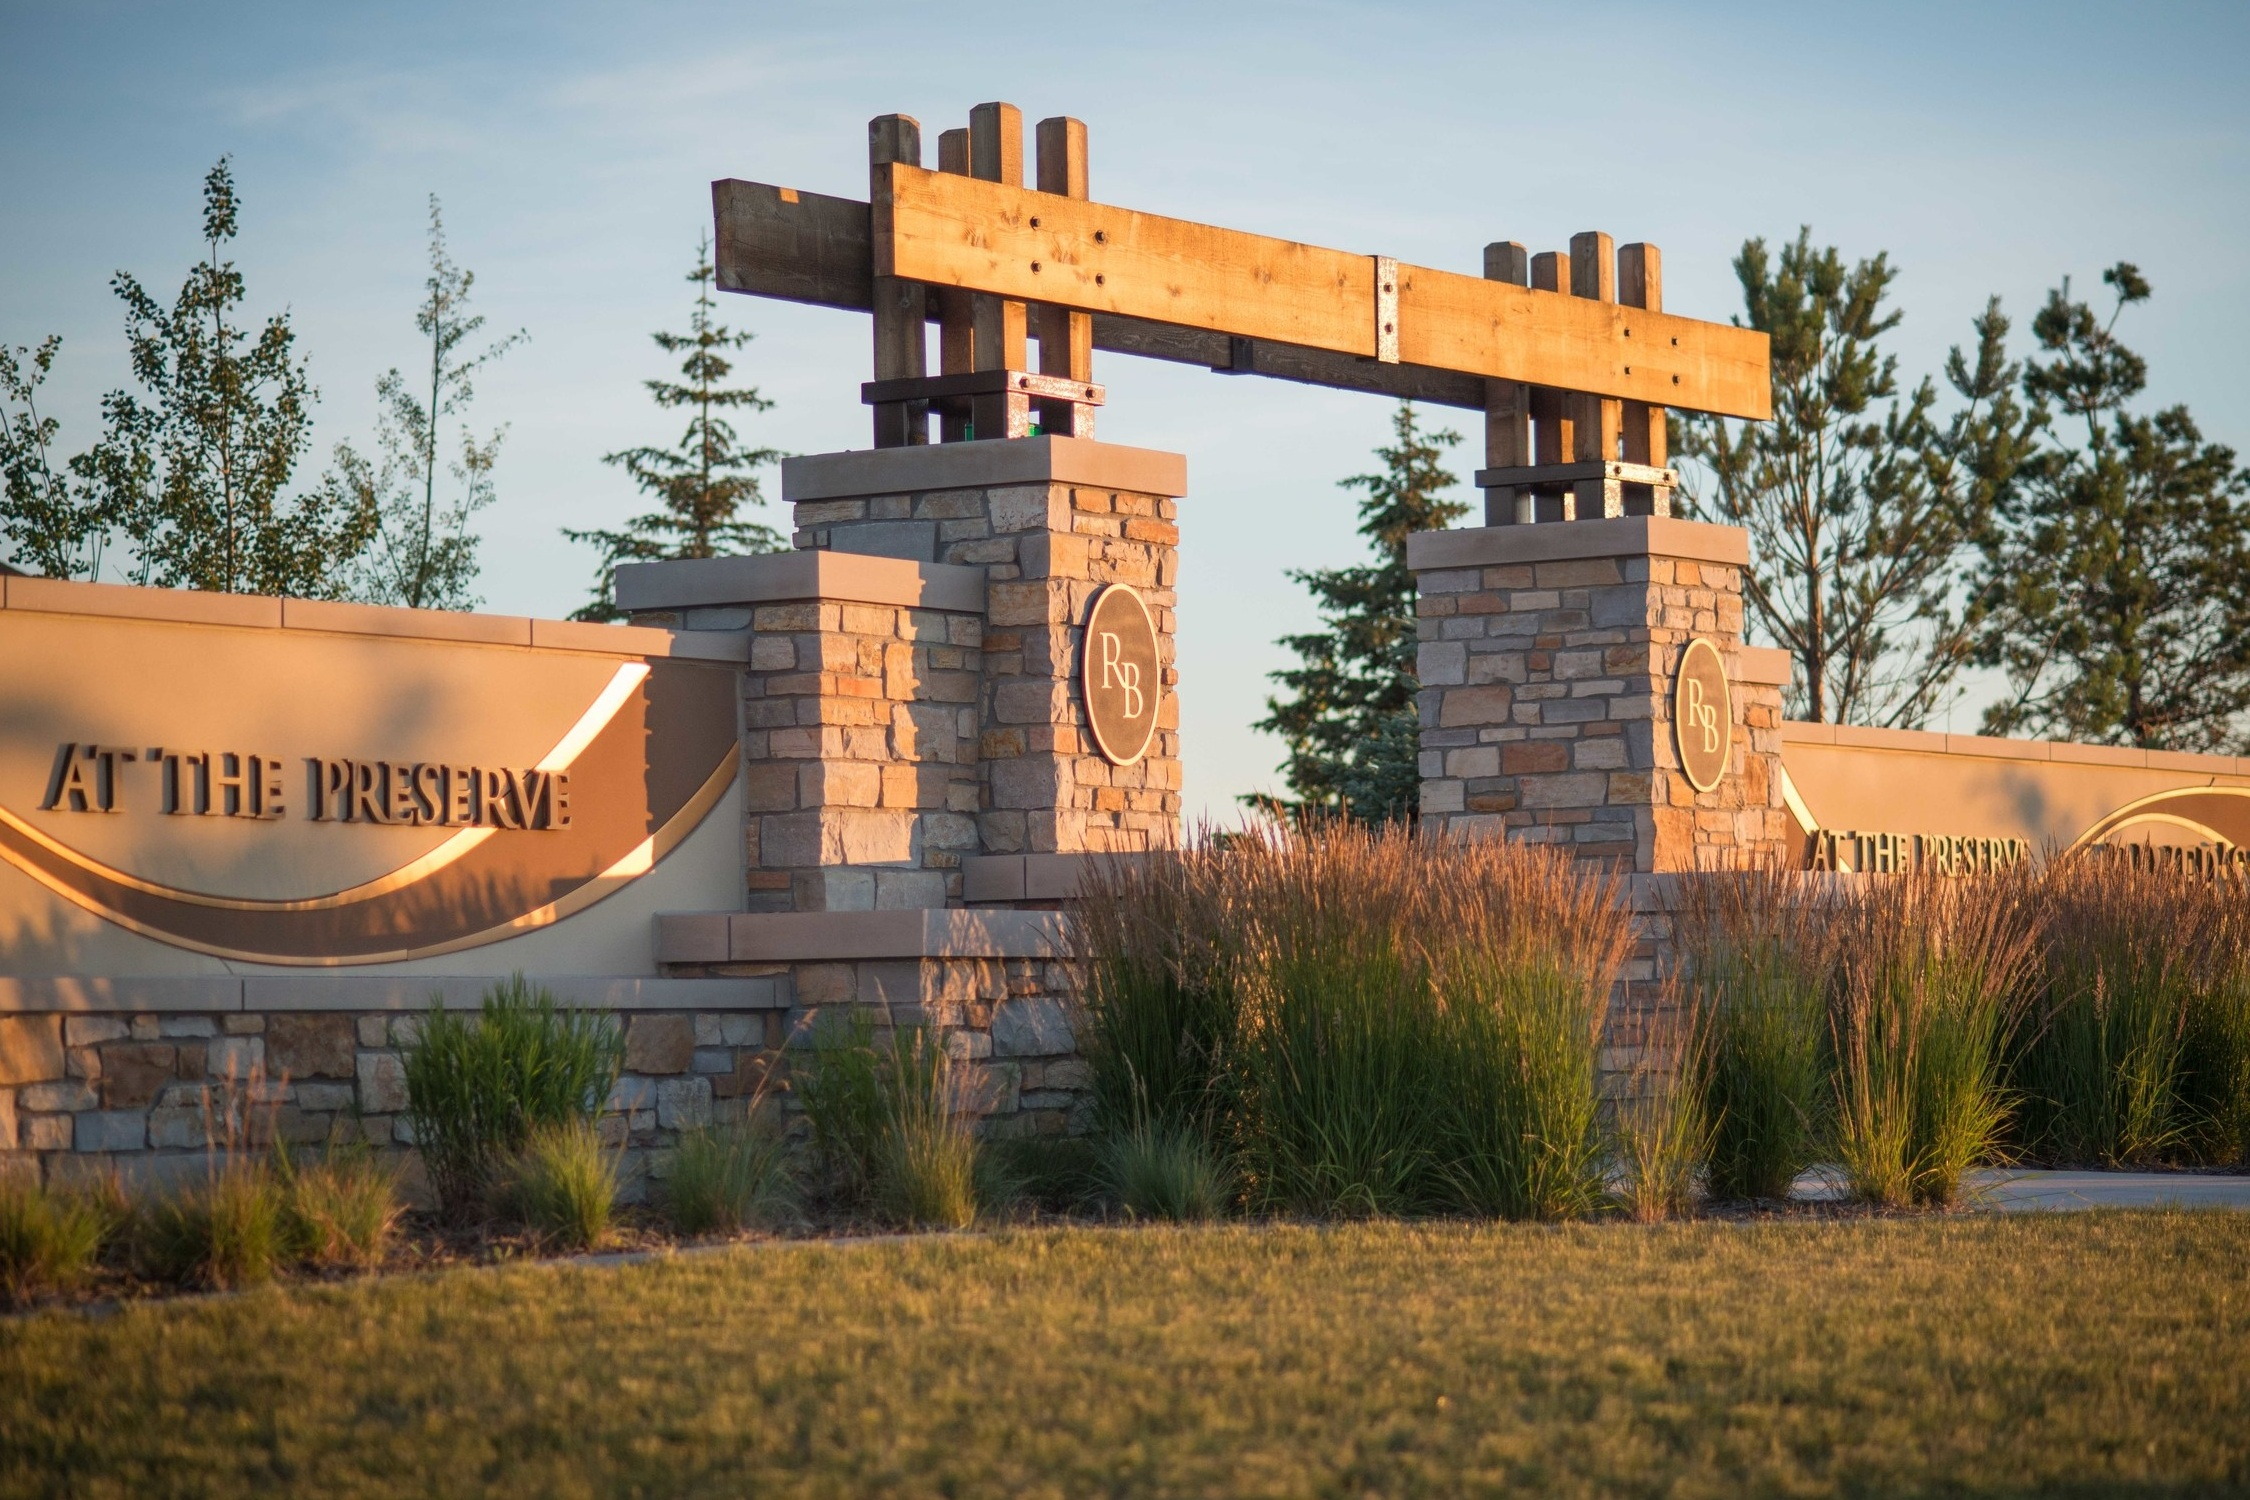 River's Bend at The Preserve is a housing development in Fargo. Land Elements designed this large entrance sign into the property.